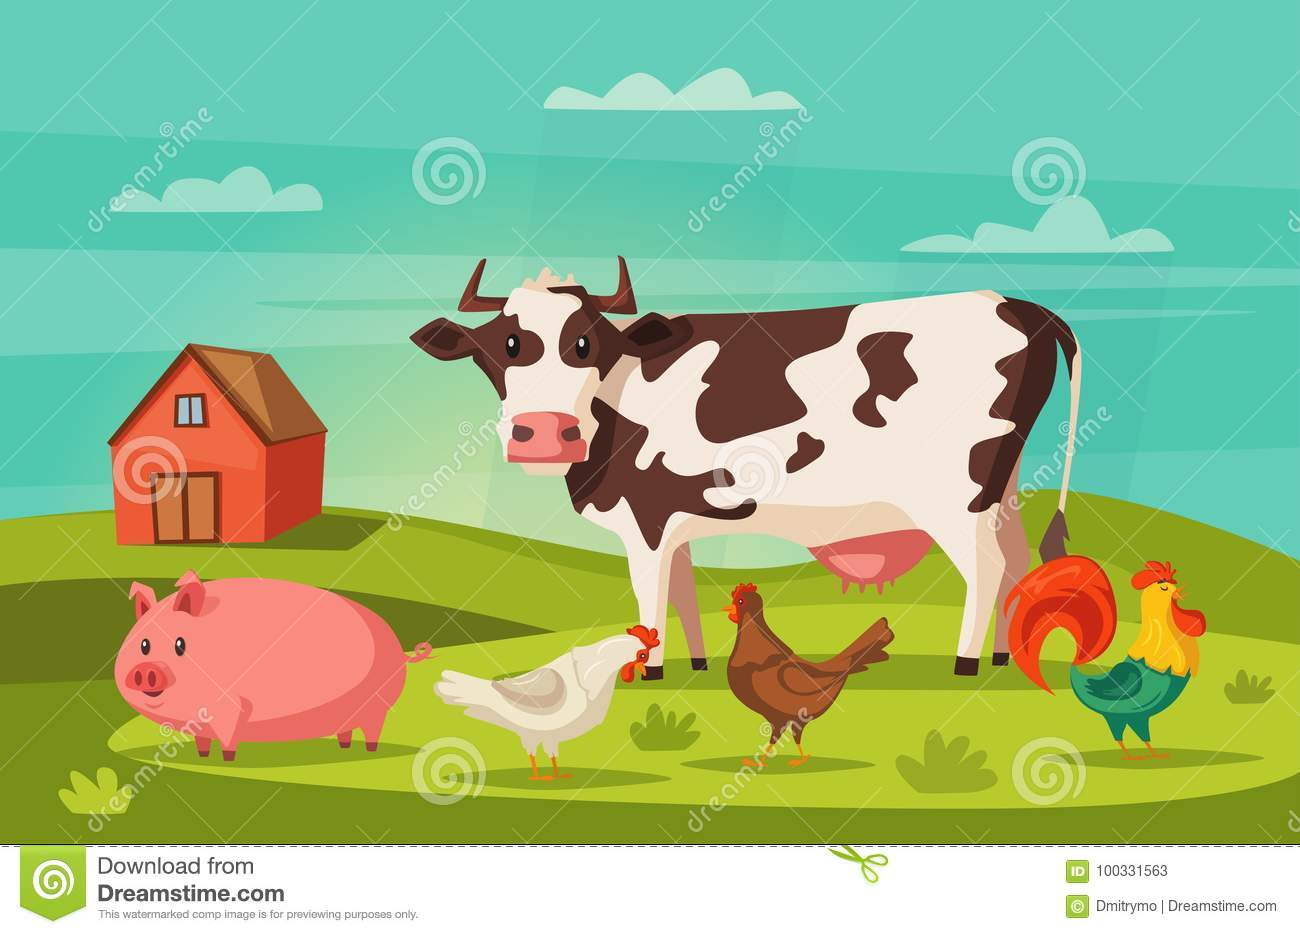 Farm Animals And House Village Cartoon Vector Illustration Hen Cow Rooster Pig For Banners Posters